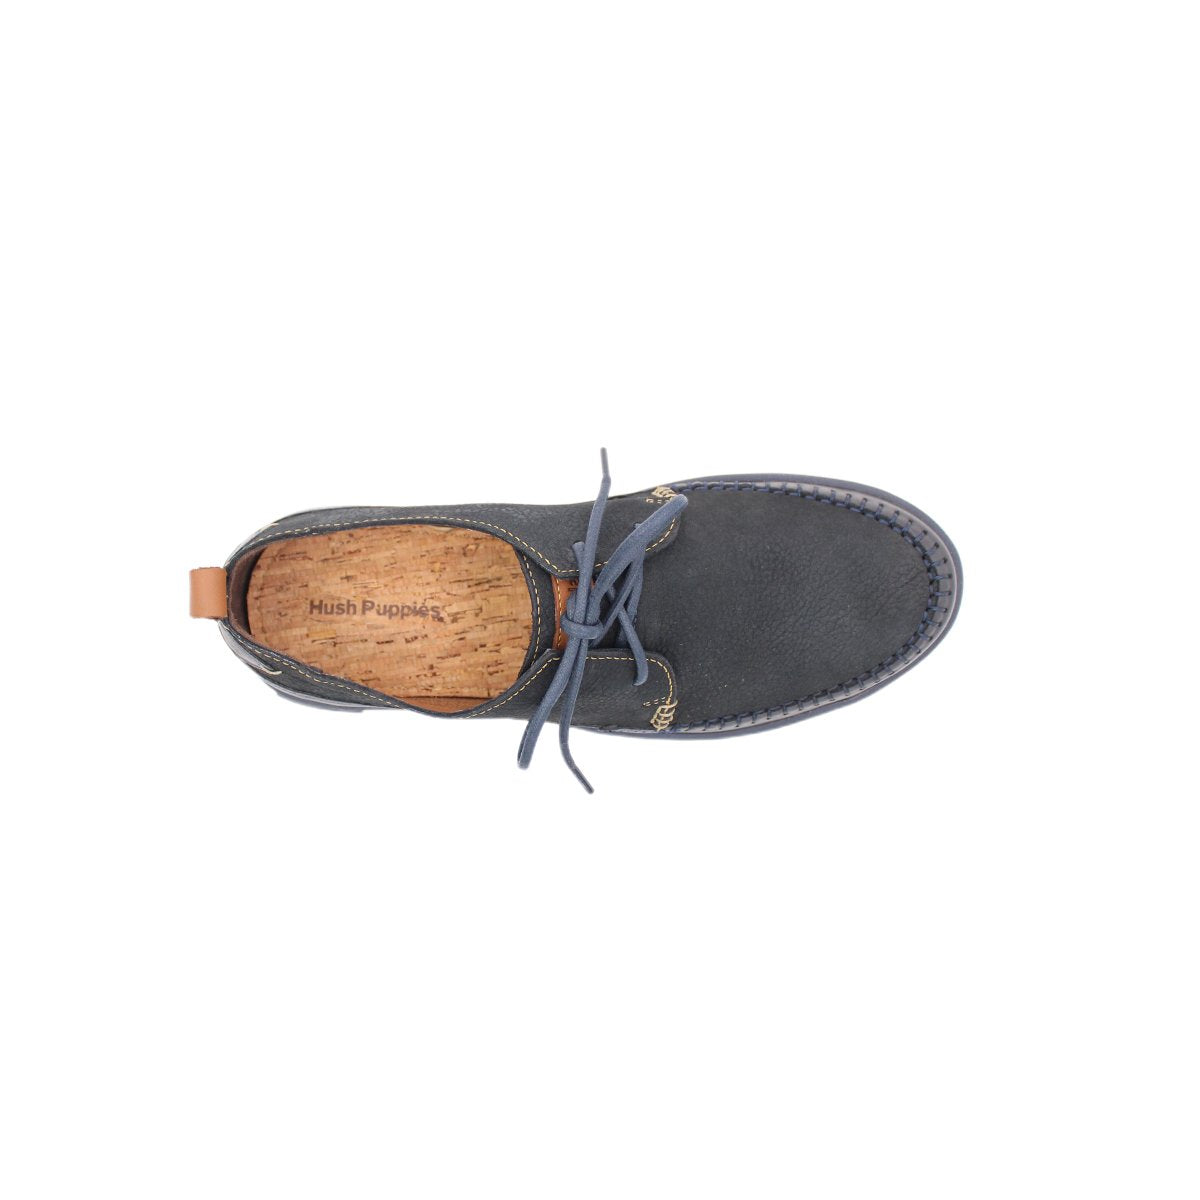 zapato casual edward - color navy, 69.99, all day comfort, azul, calzado, cuero, temporada 5, hombre, hush puppies, navy, precio regular, comprar, en linea, online, delivery, el salvador, zapatos, hush puppies